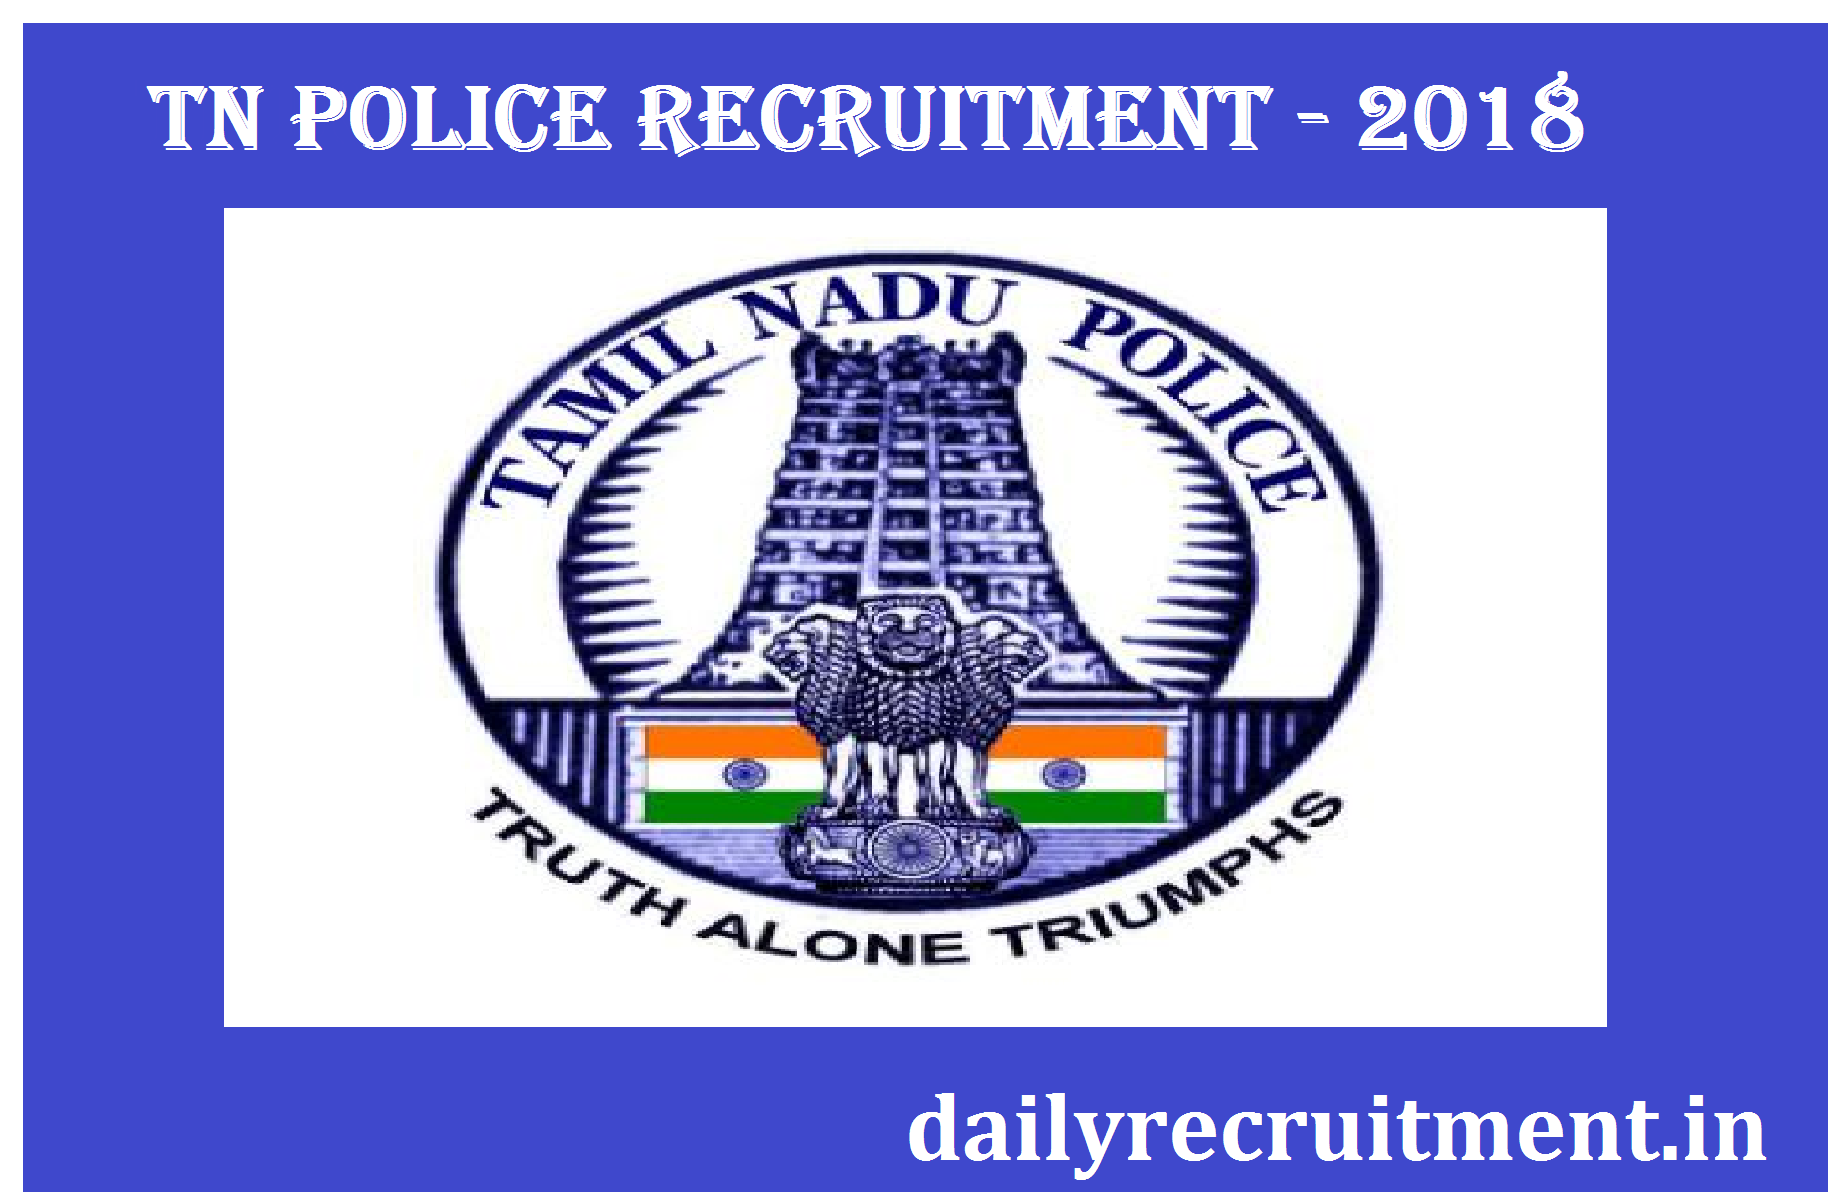 Tn police recruitment 2018 apply online for 6140 tnusrb constable tn police recruitment 2018 apply online for 6140 tnusrb constable other posts biocorpaavc Gallery